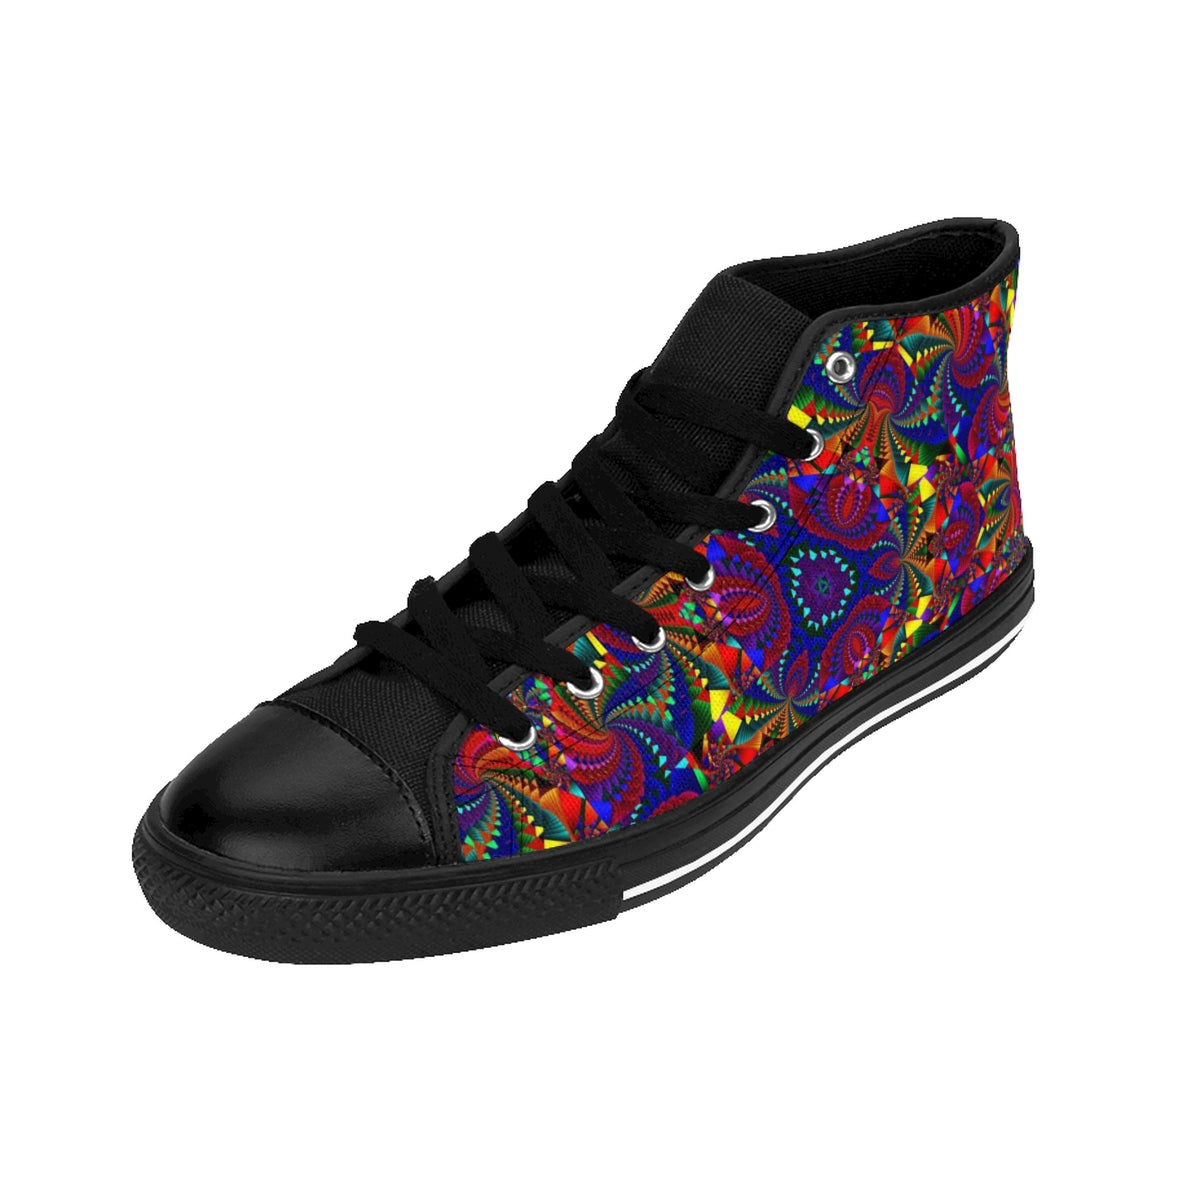 kaleidoscope Mandala Women's High-top Sneakers